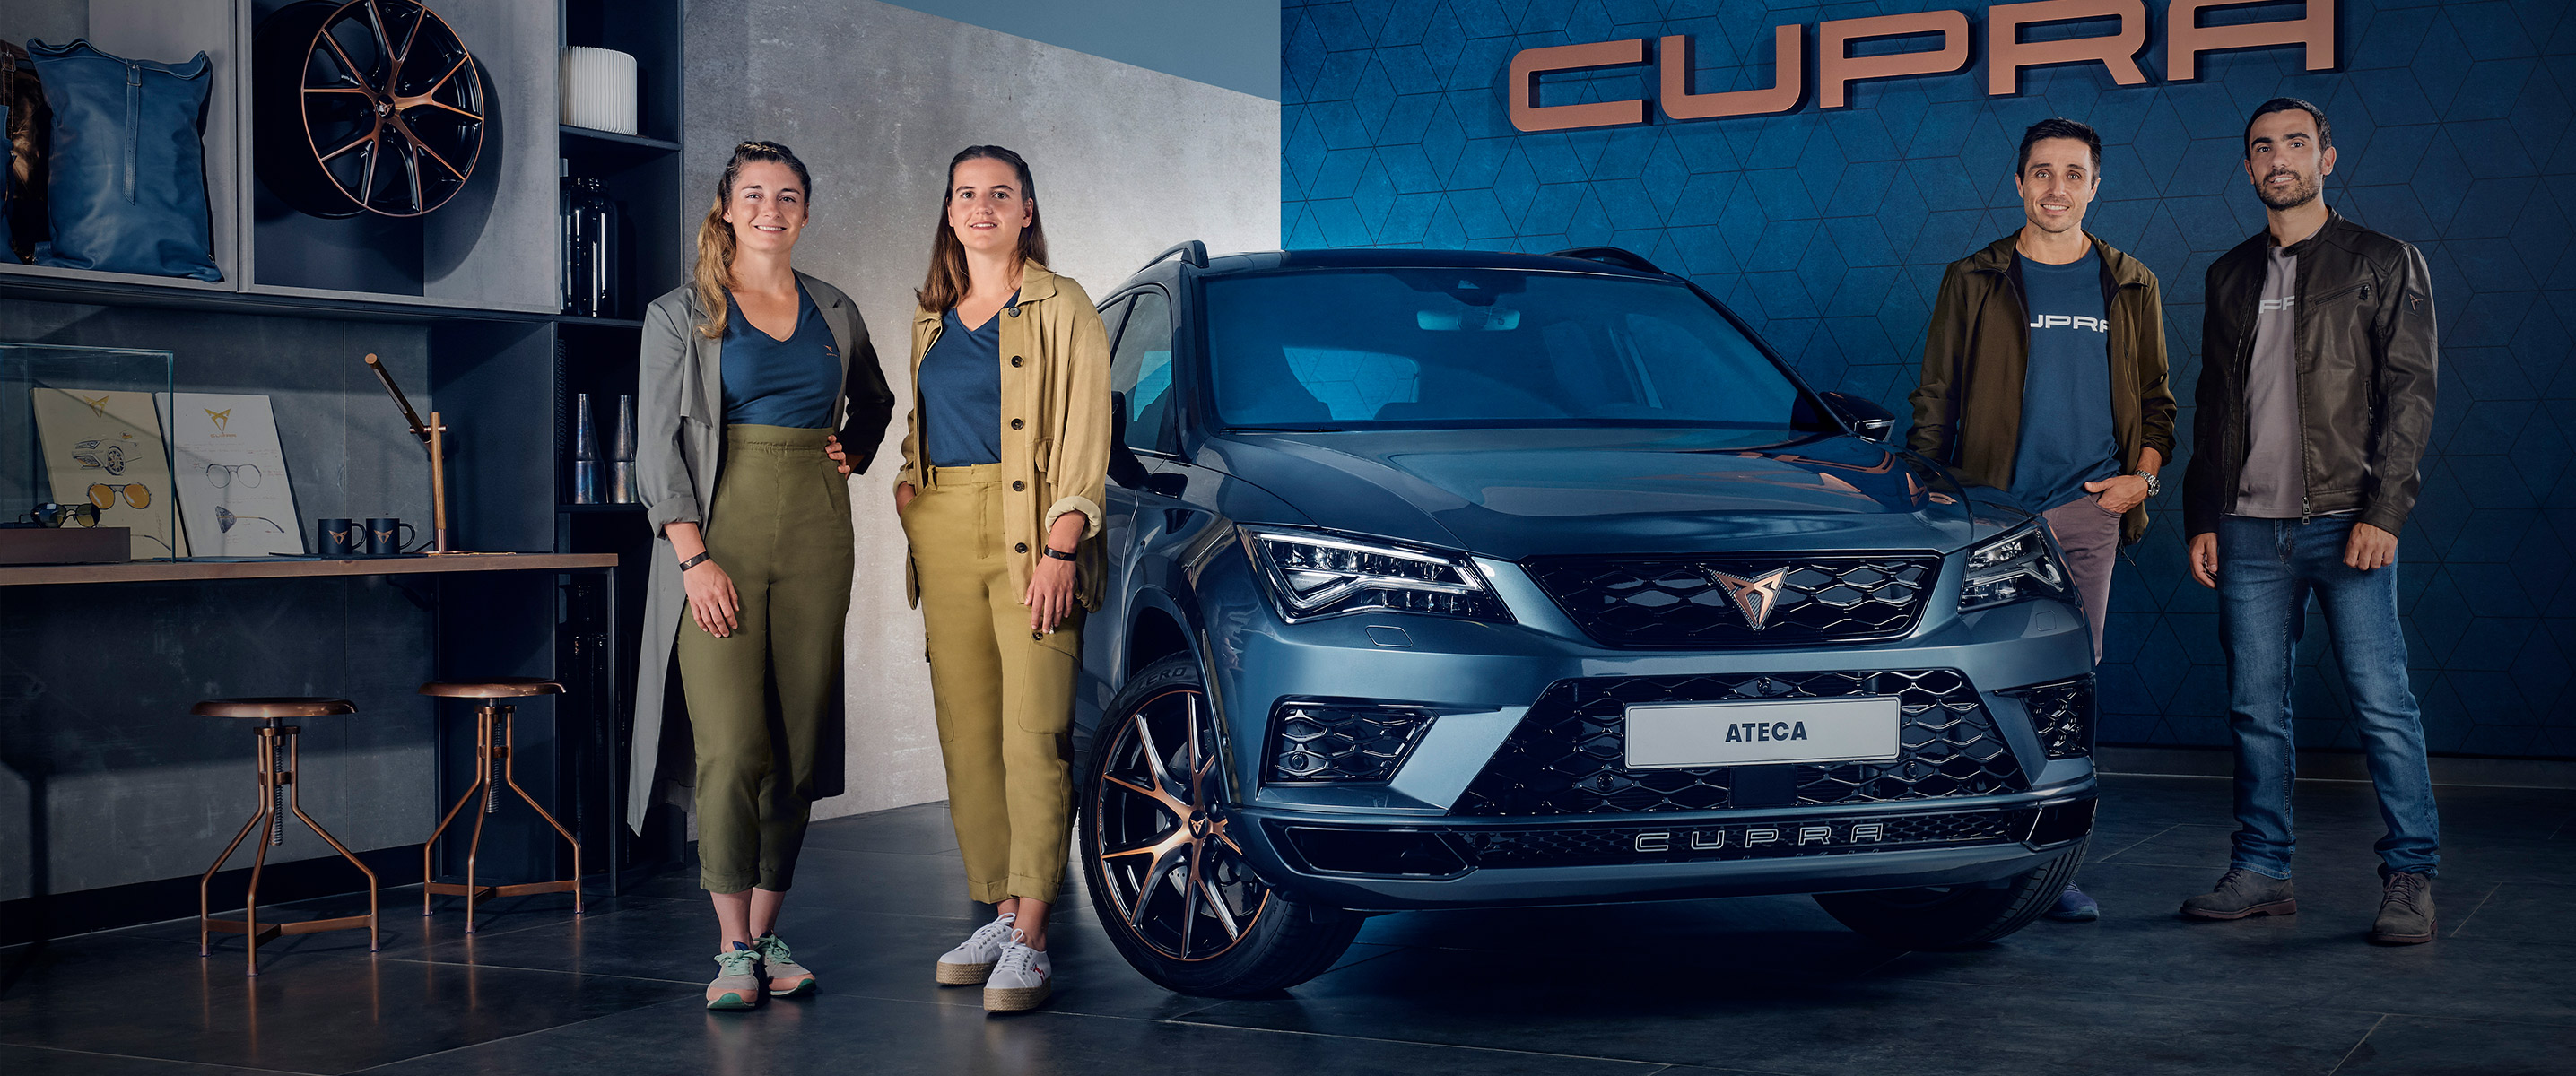 CUPRA Ateca front view with padel players